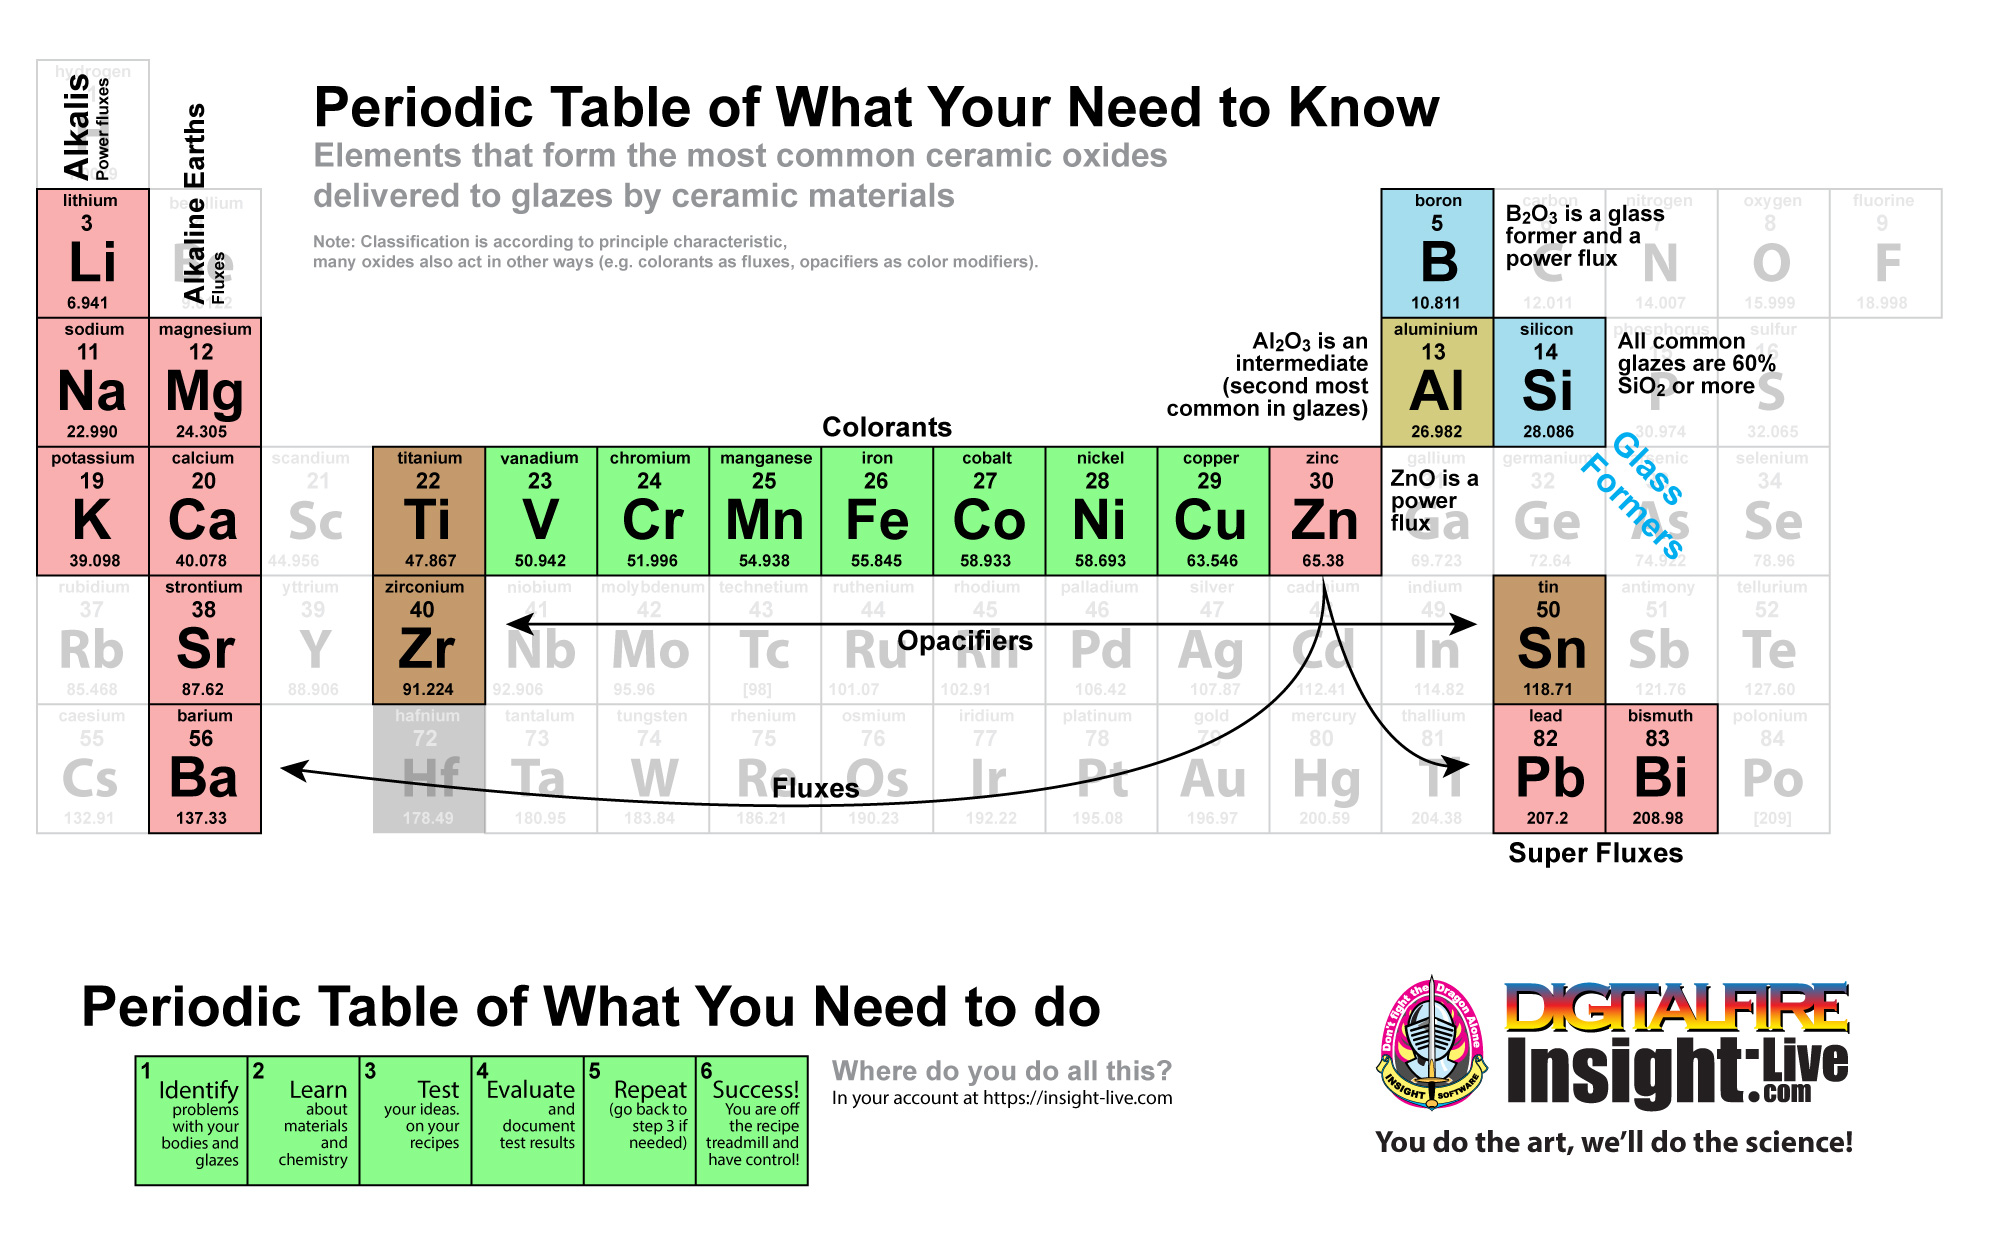 Periodic Table of What You Need to Do!